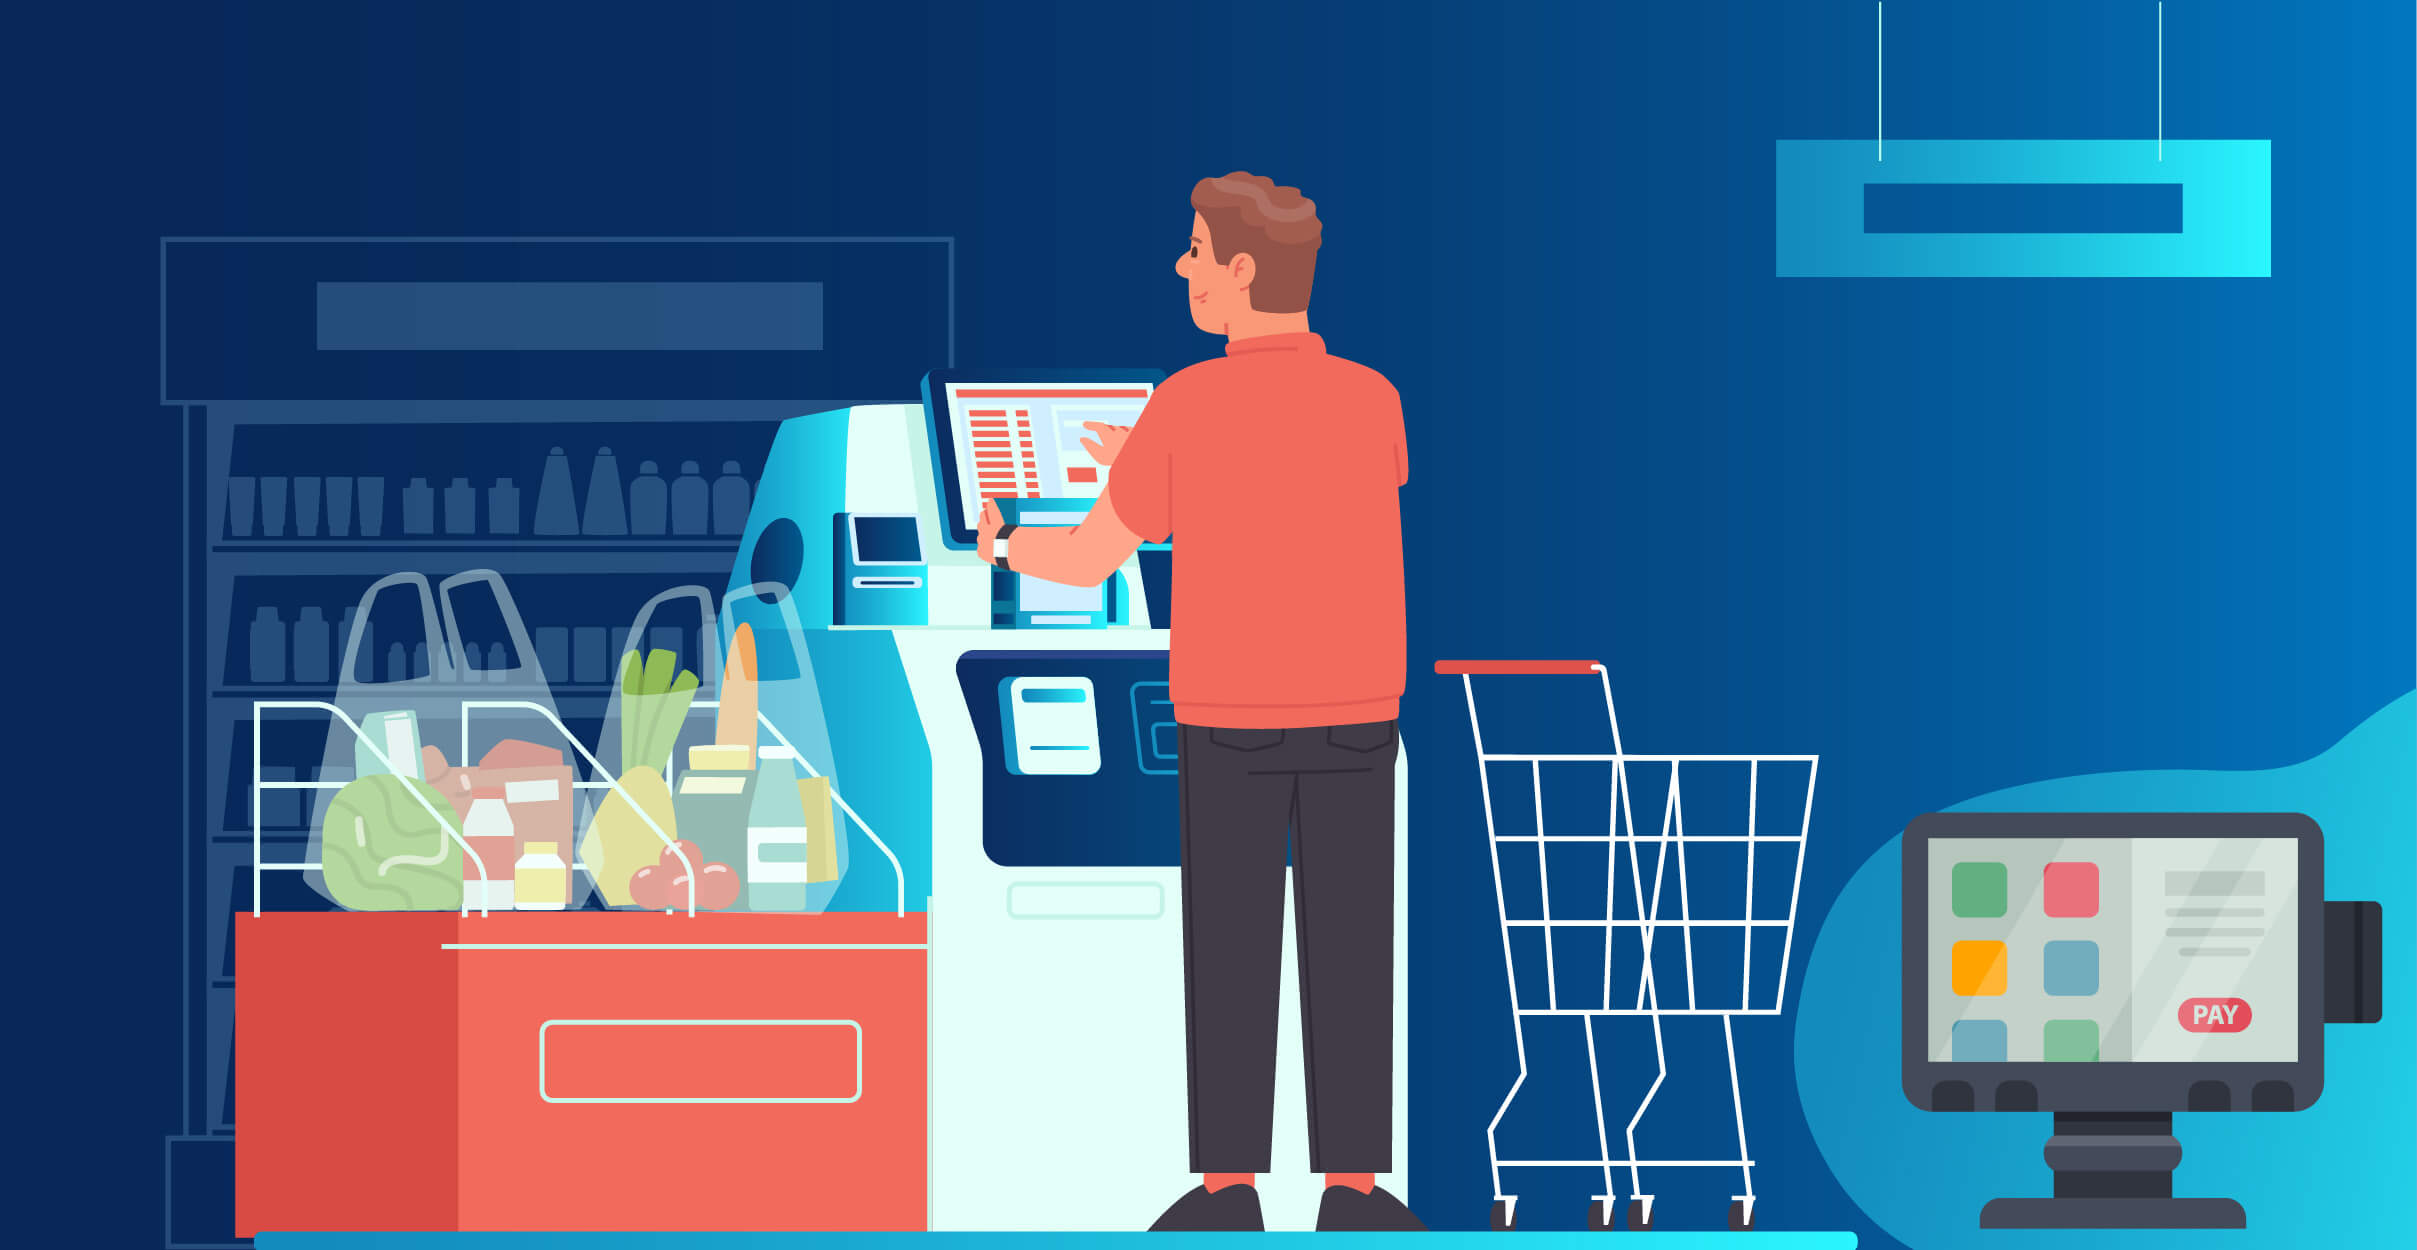 Automated FTx POS software solution